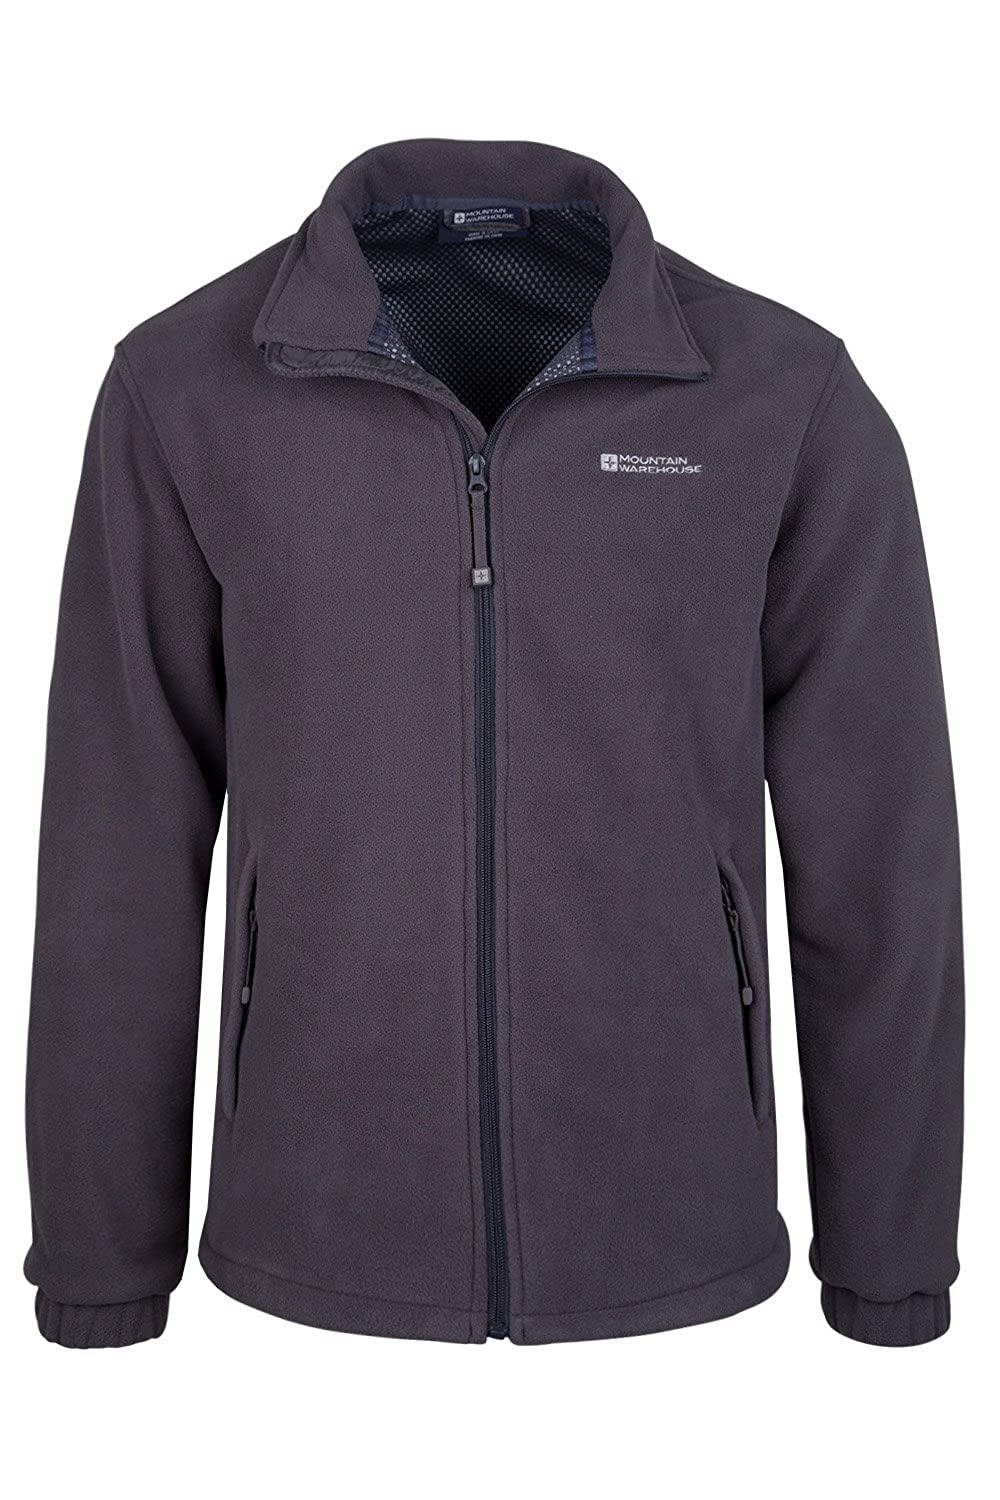 Mountain Warehouse Bernard winddichter Fleecepulli für Herren